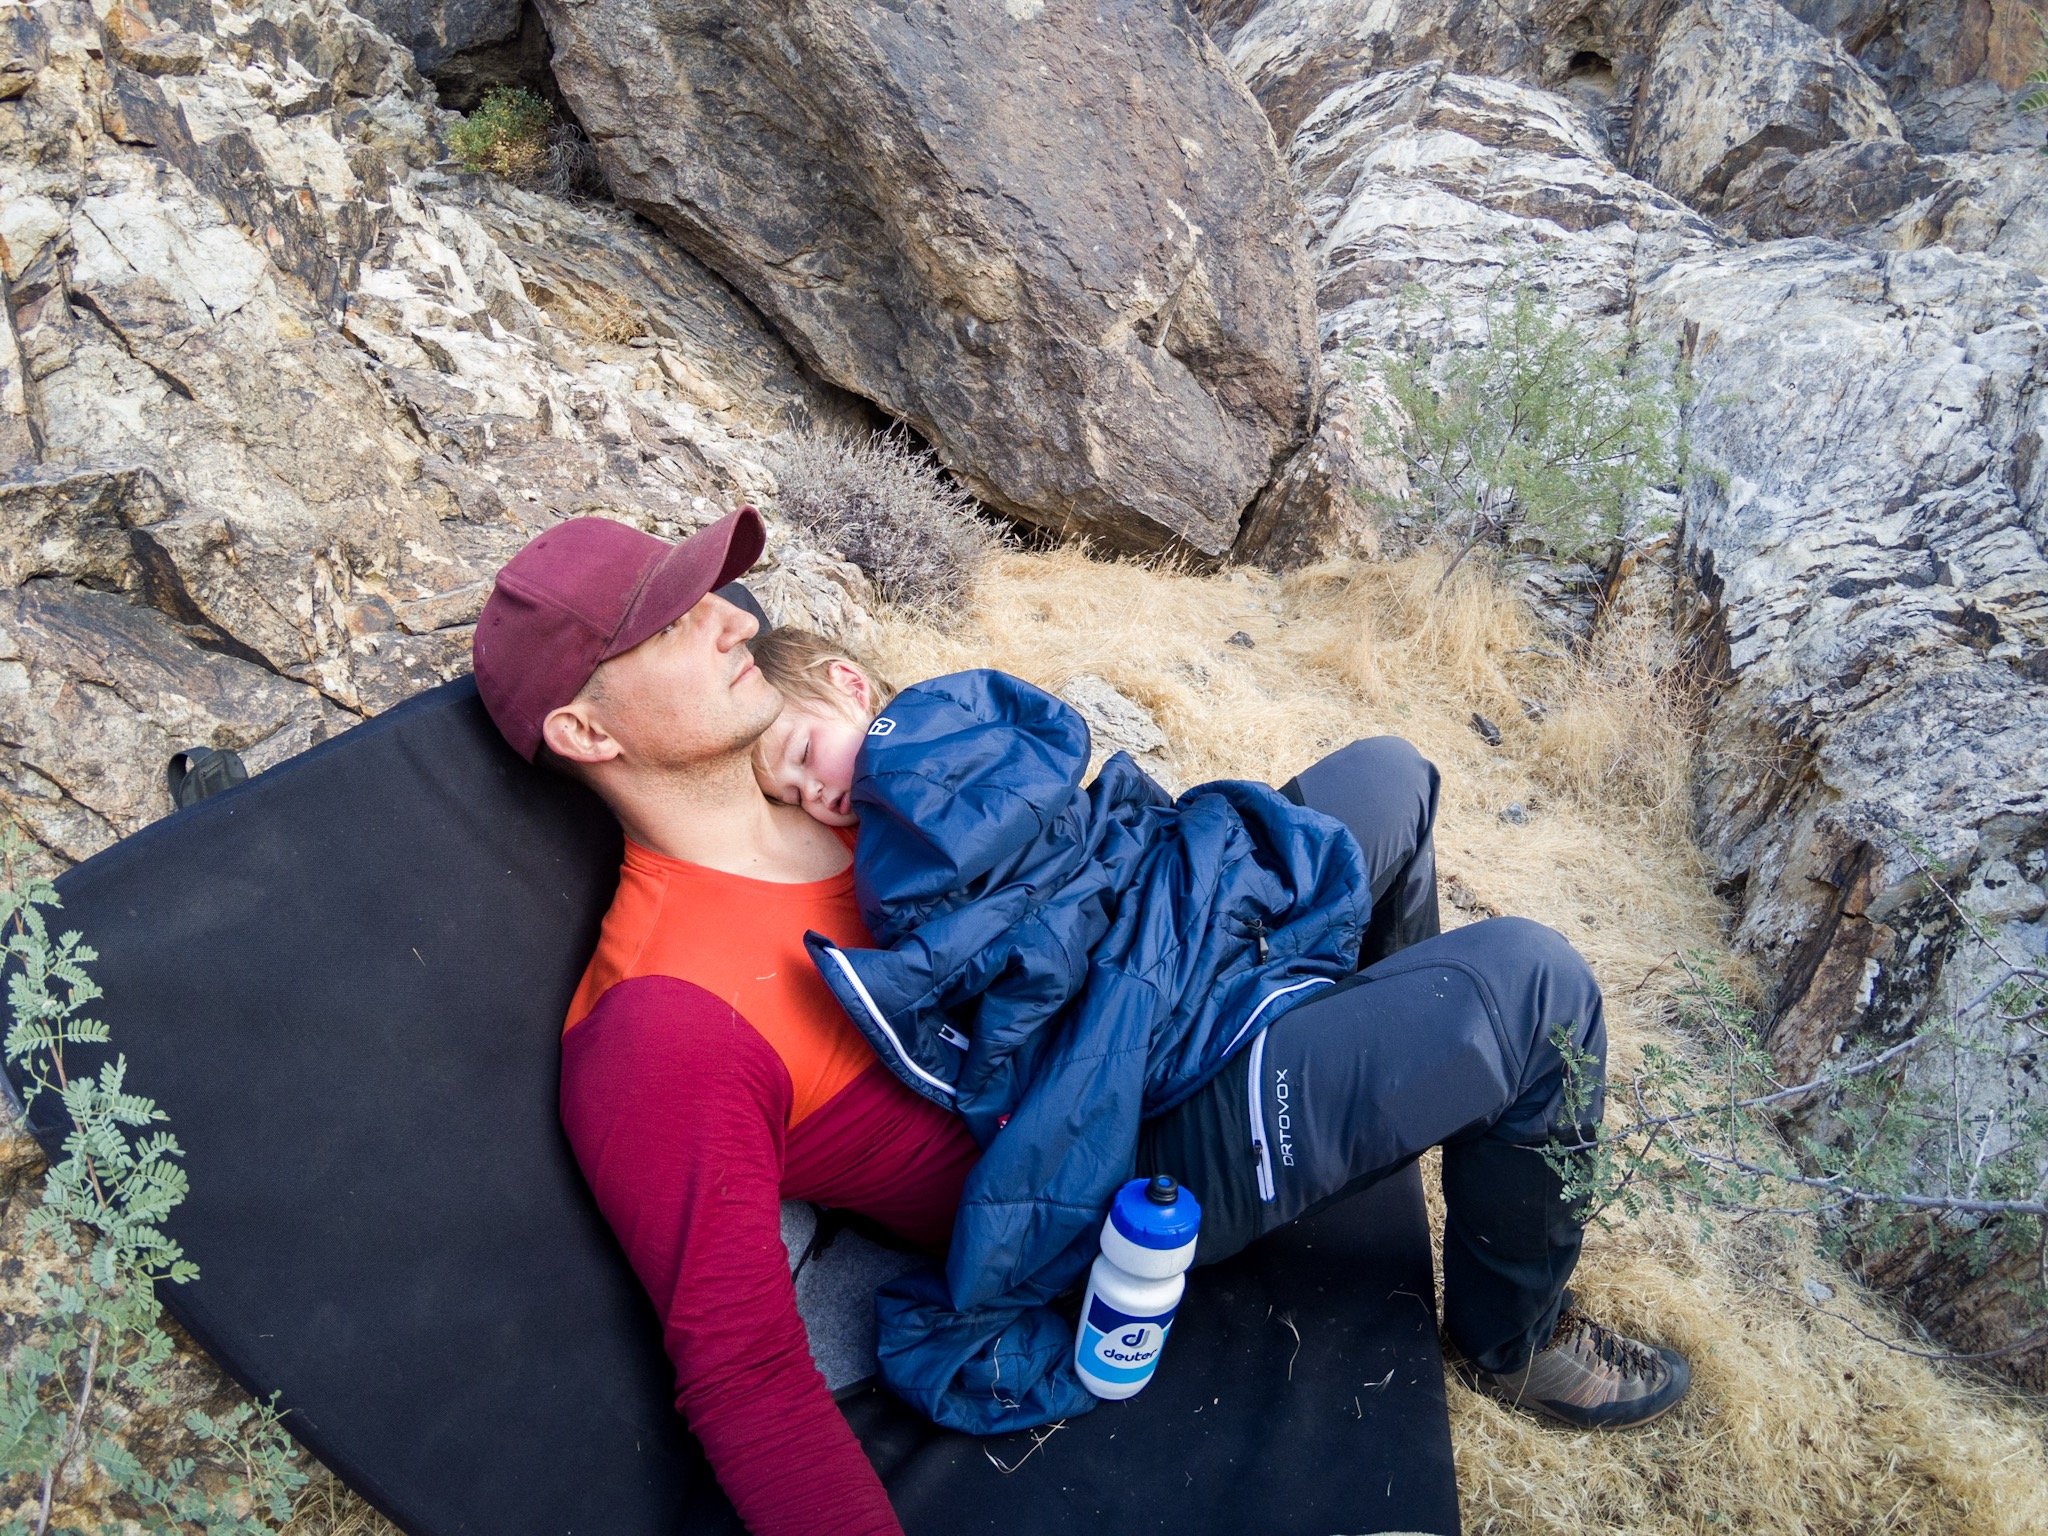 Nap time at the crag.